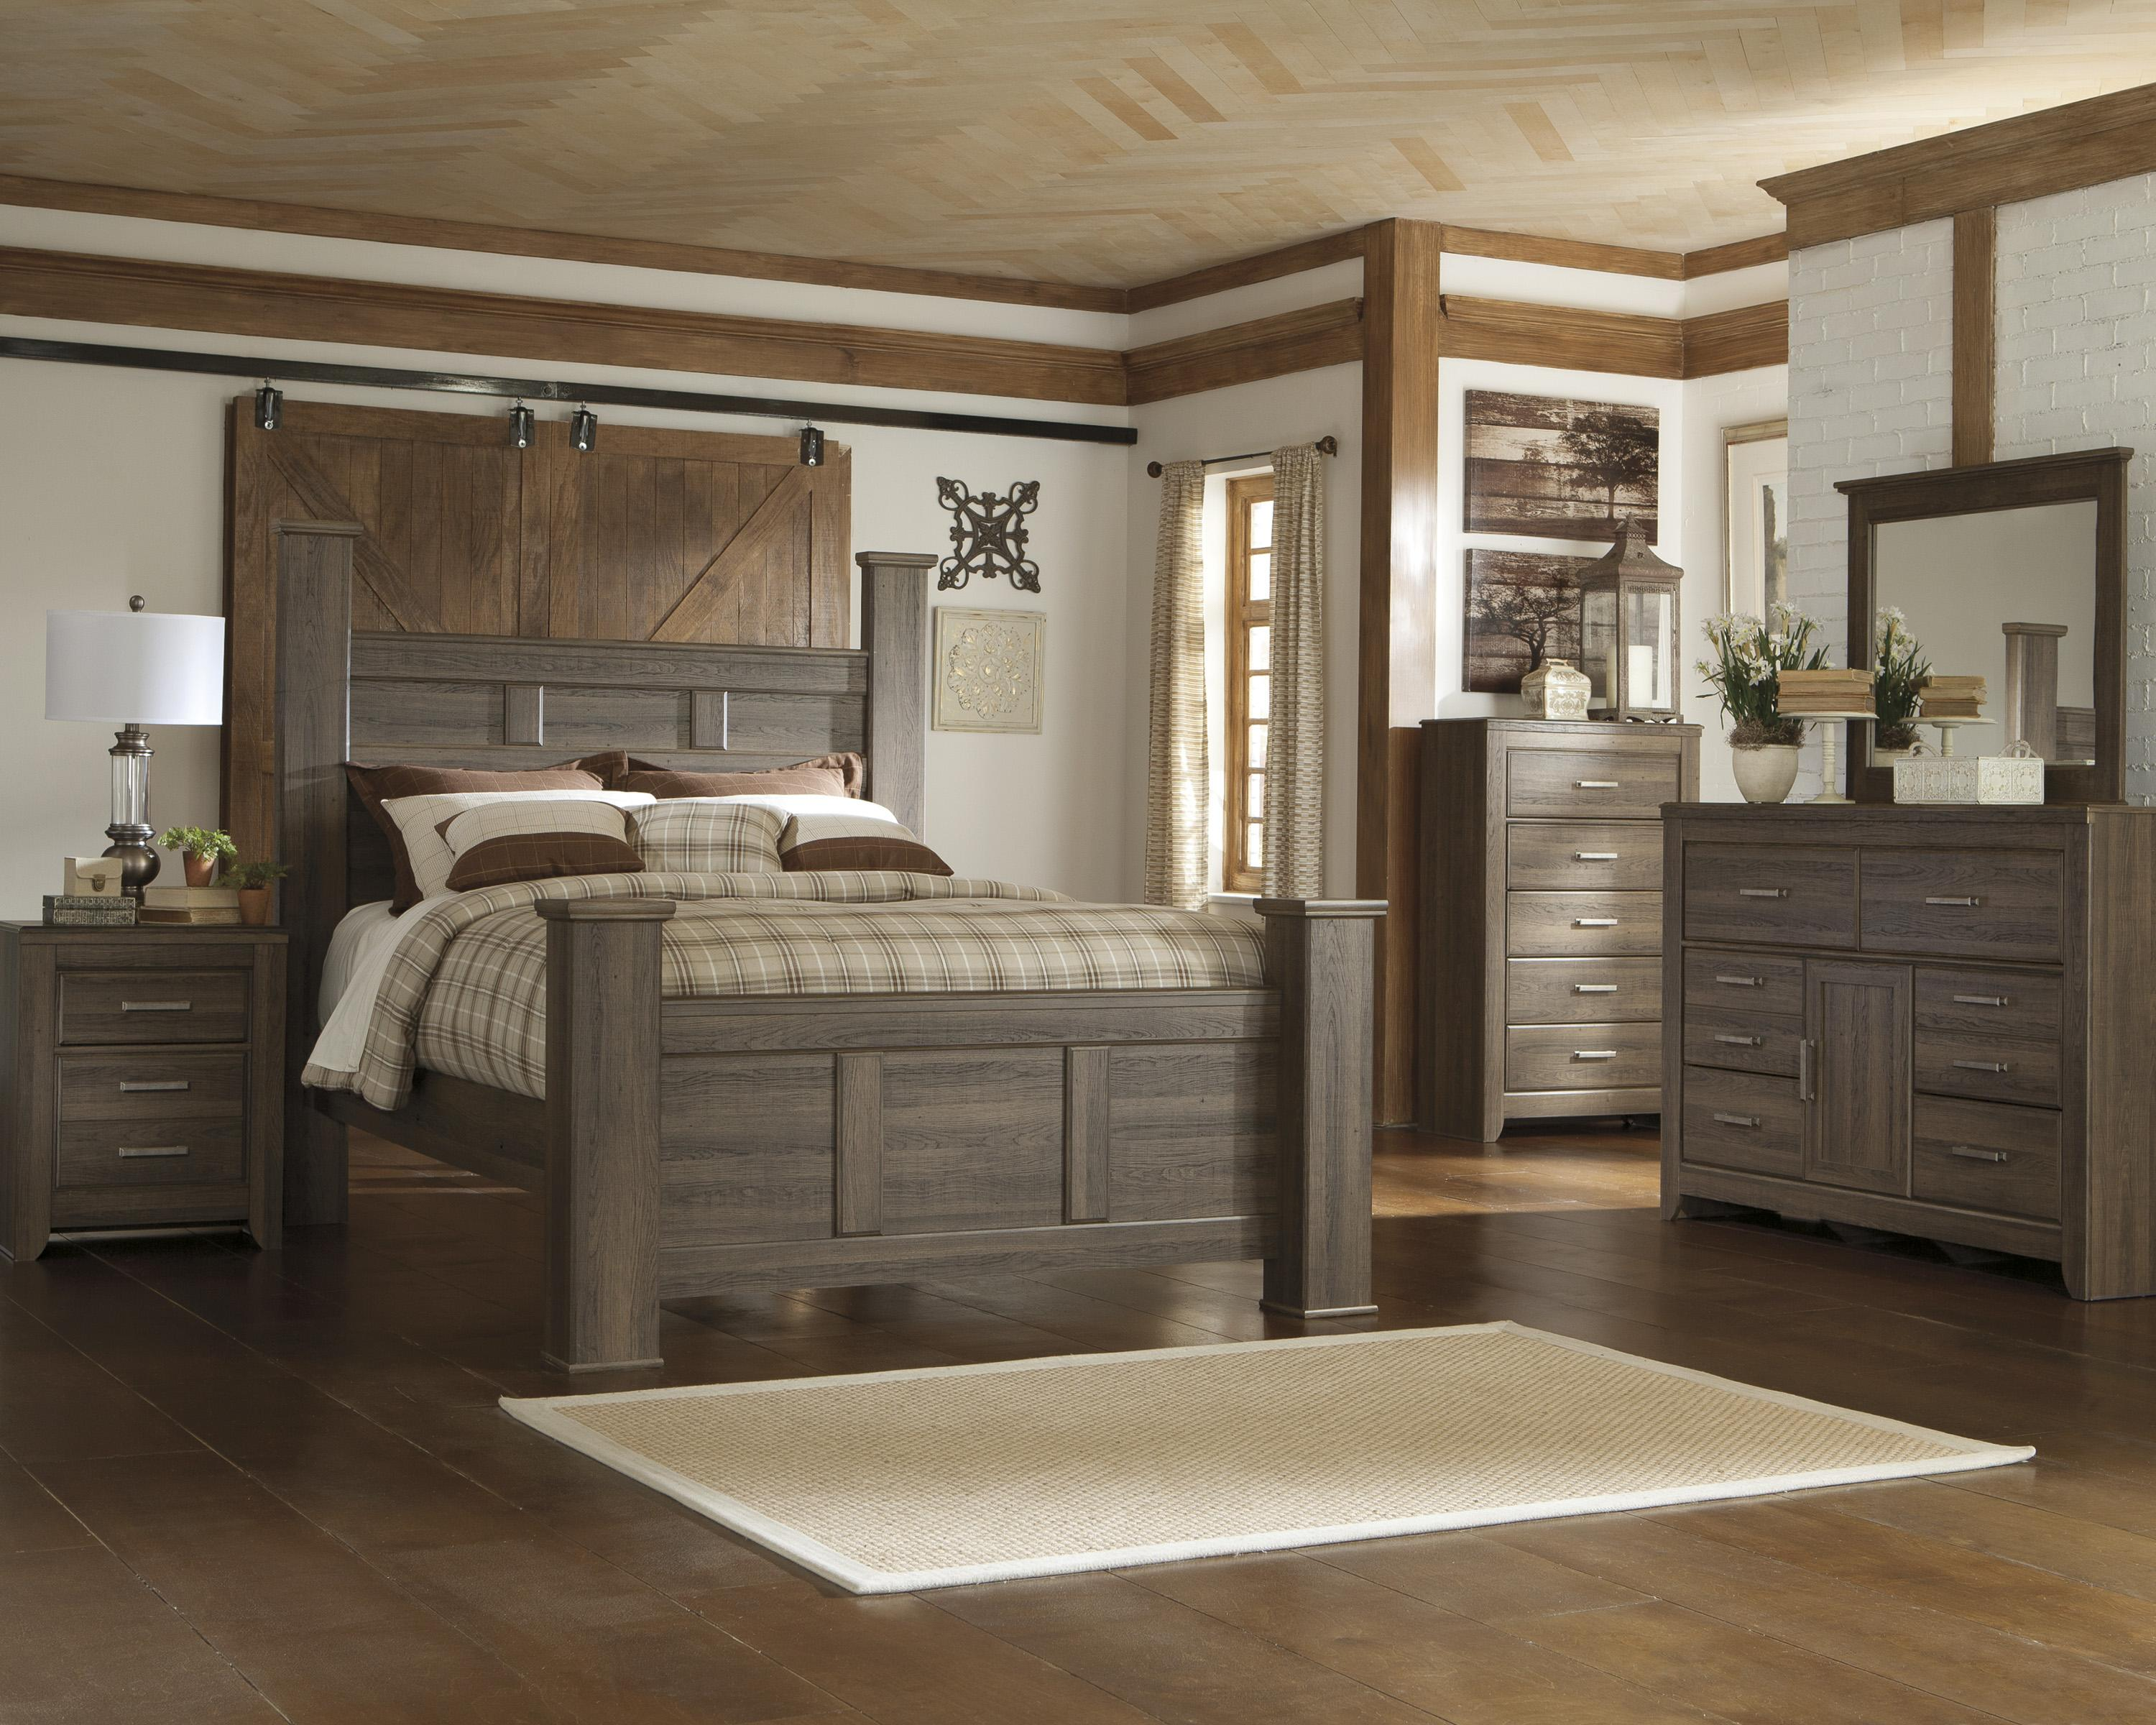 Signature Design by Ashley Juararo California King Bedroom Group - Item Number: B251 CK Bedroom Group 3